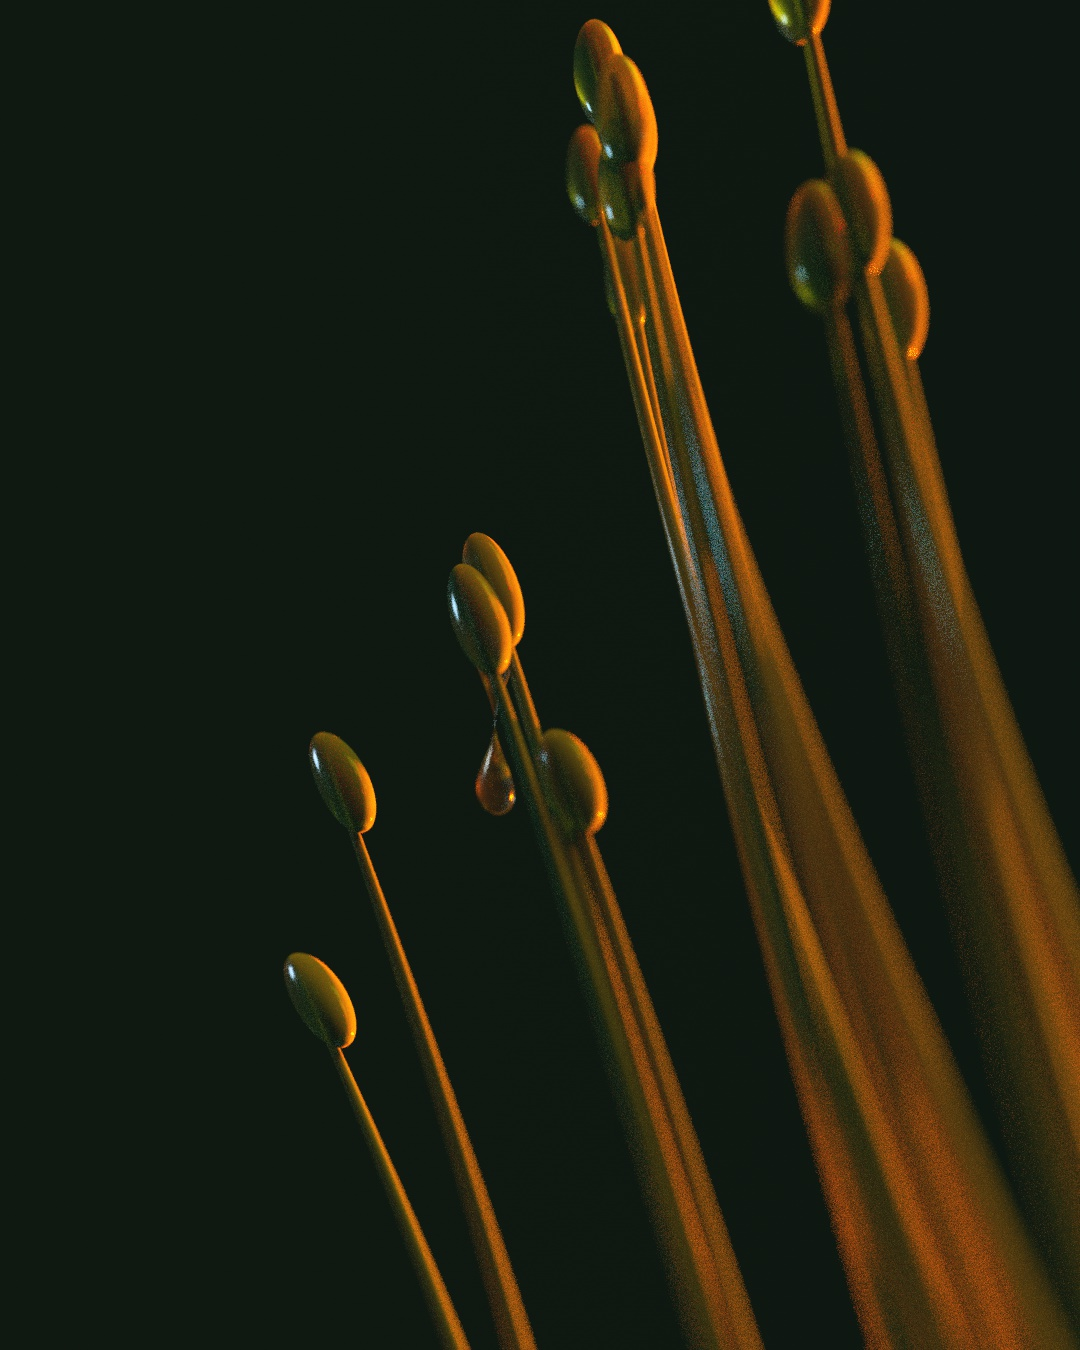 A drop of water about to fall from a bunch of stems